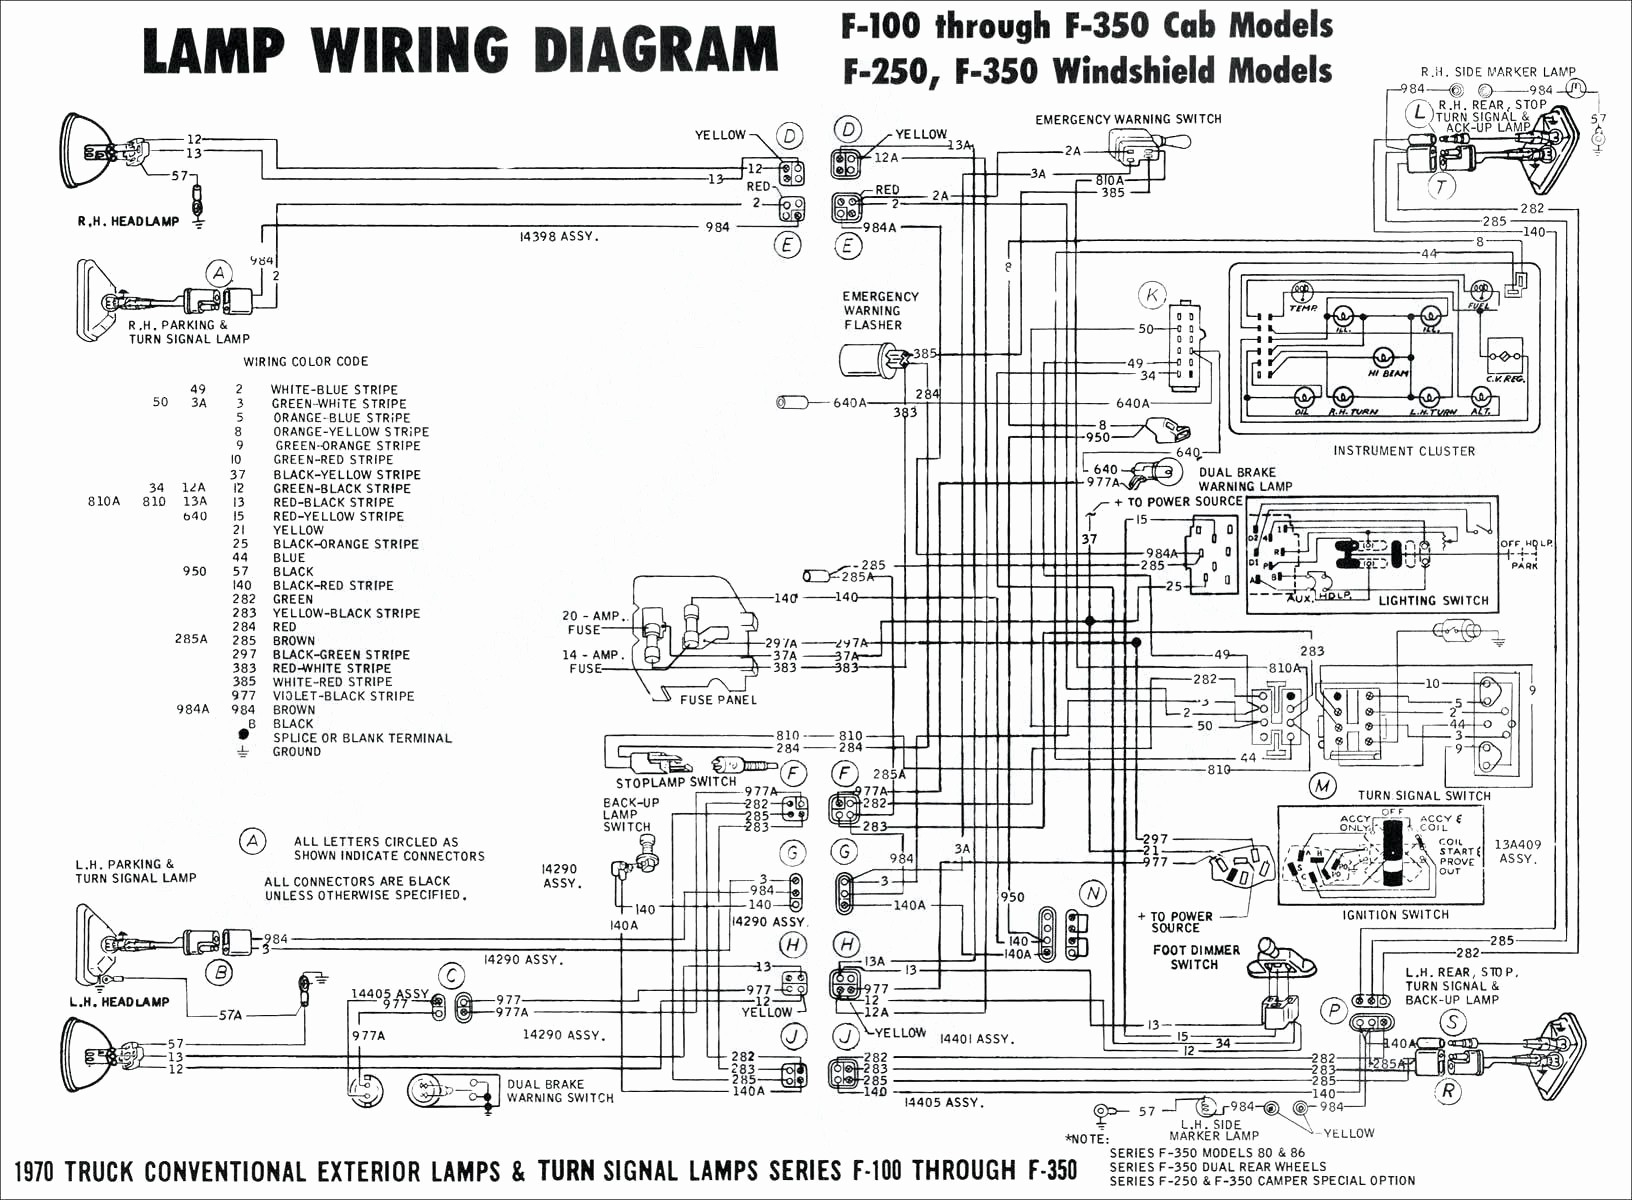 [DIAGRAM] Power Locks Wiring Diagram For 1995 Chevy FULL